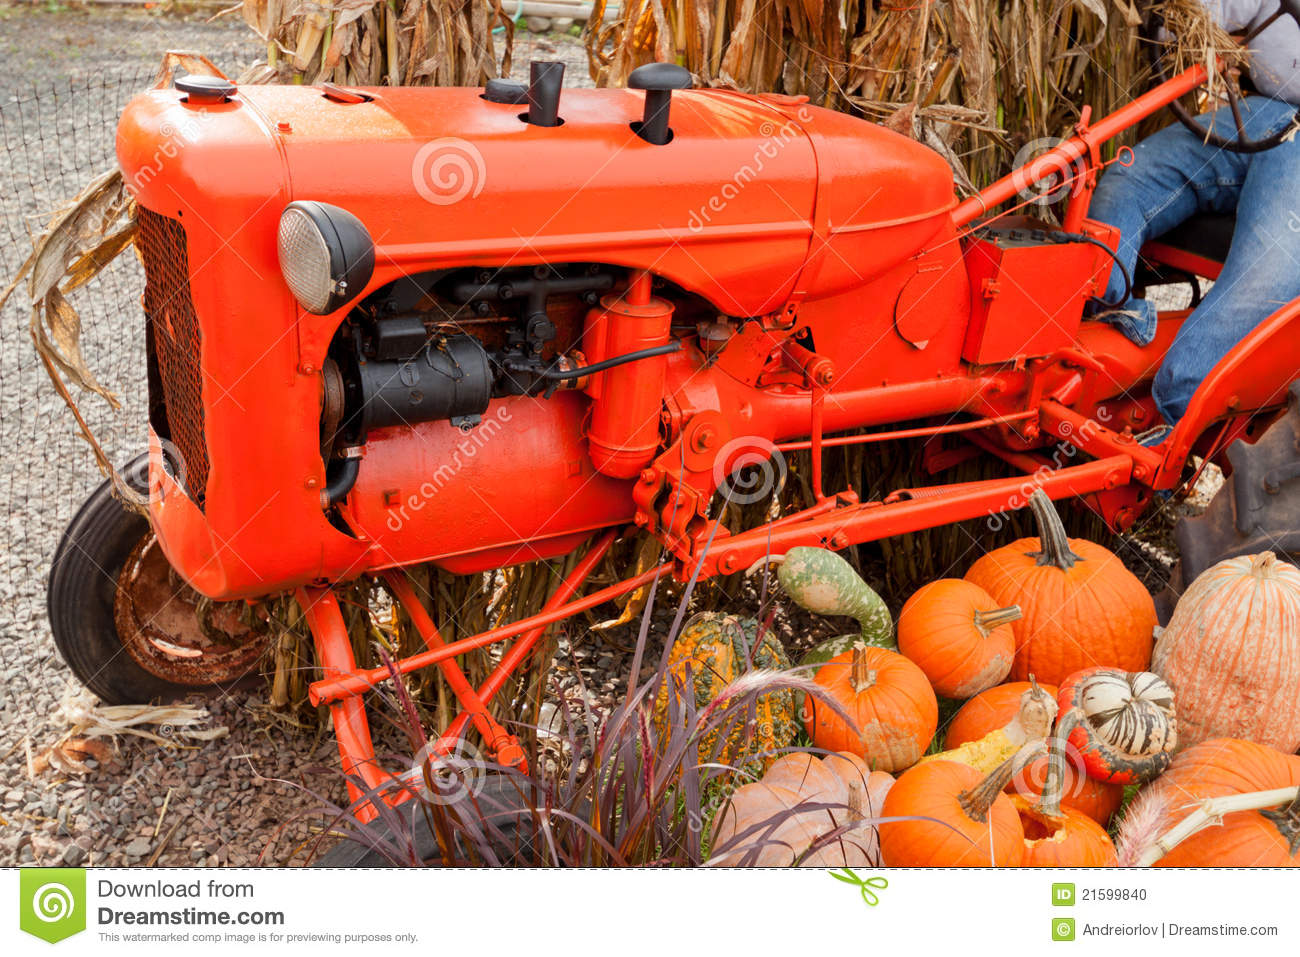 Fall Decorations At The Farm  Stock Photo   Image  21599840